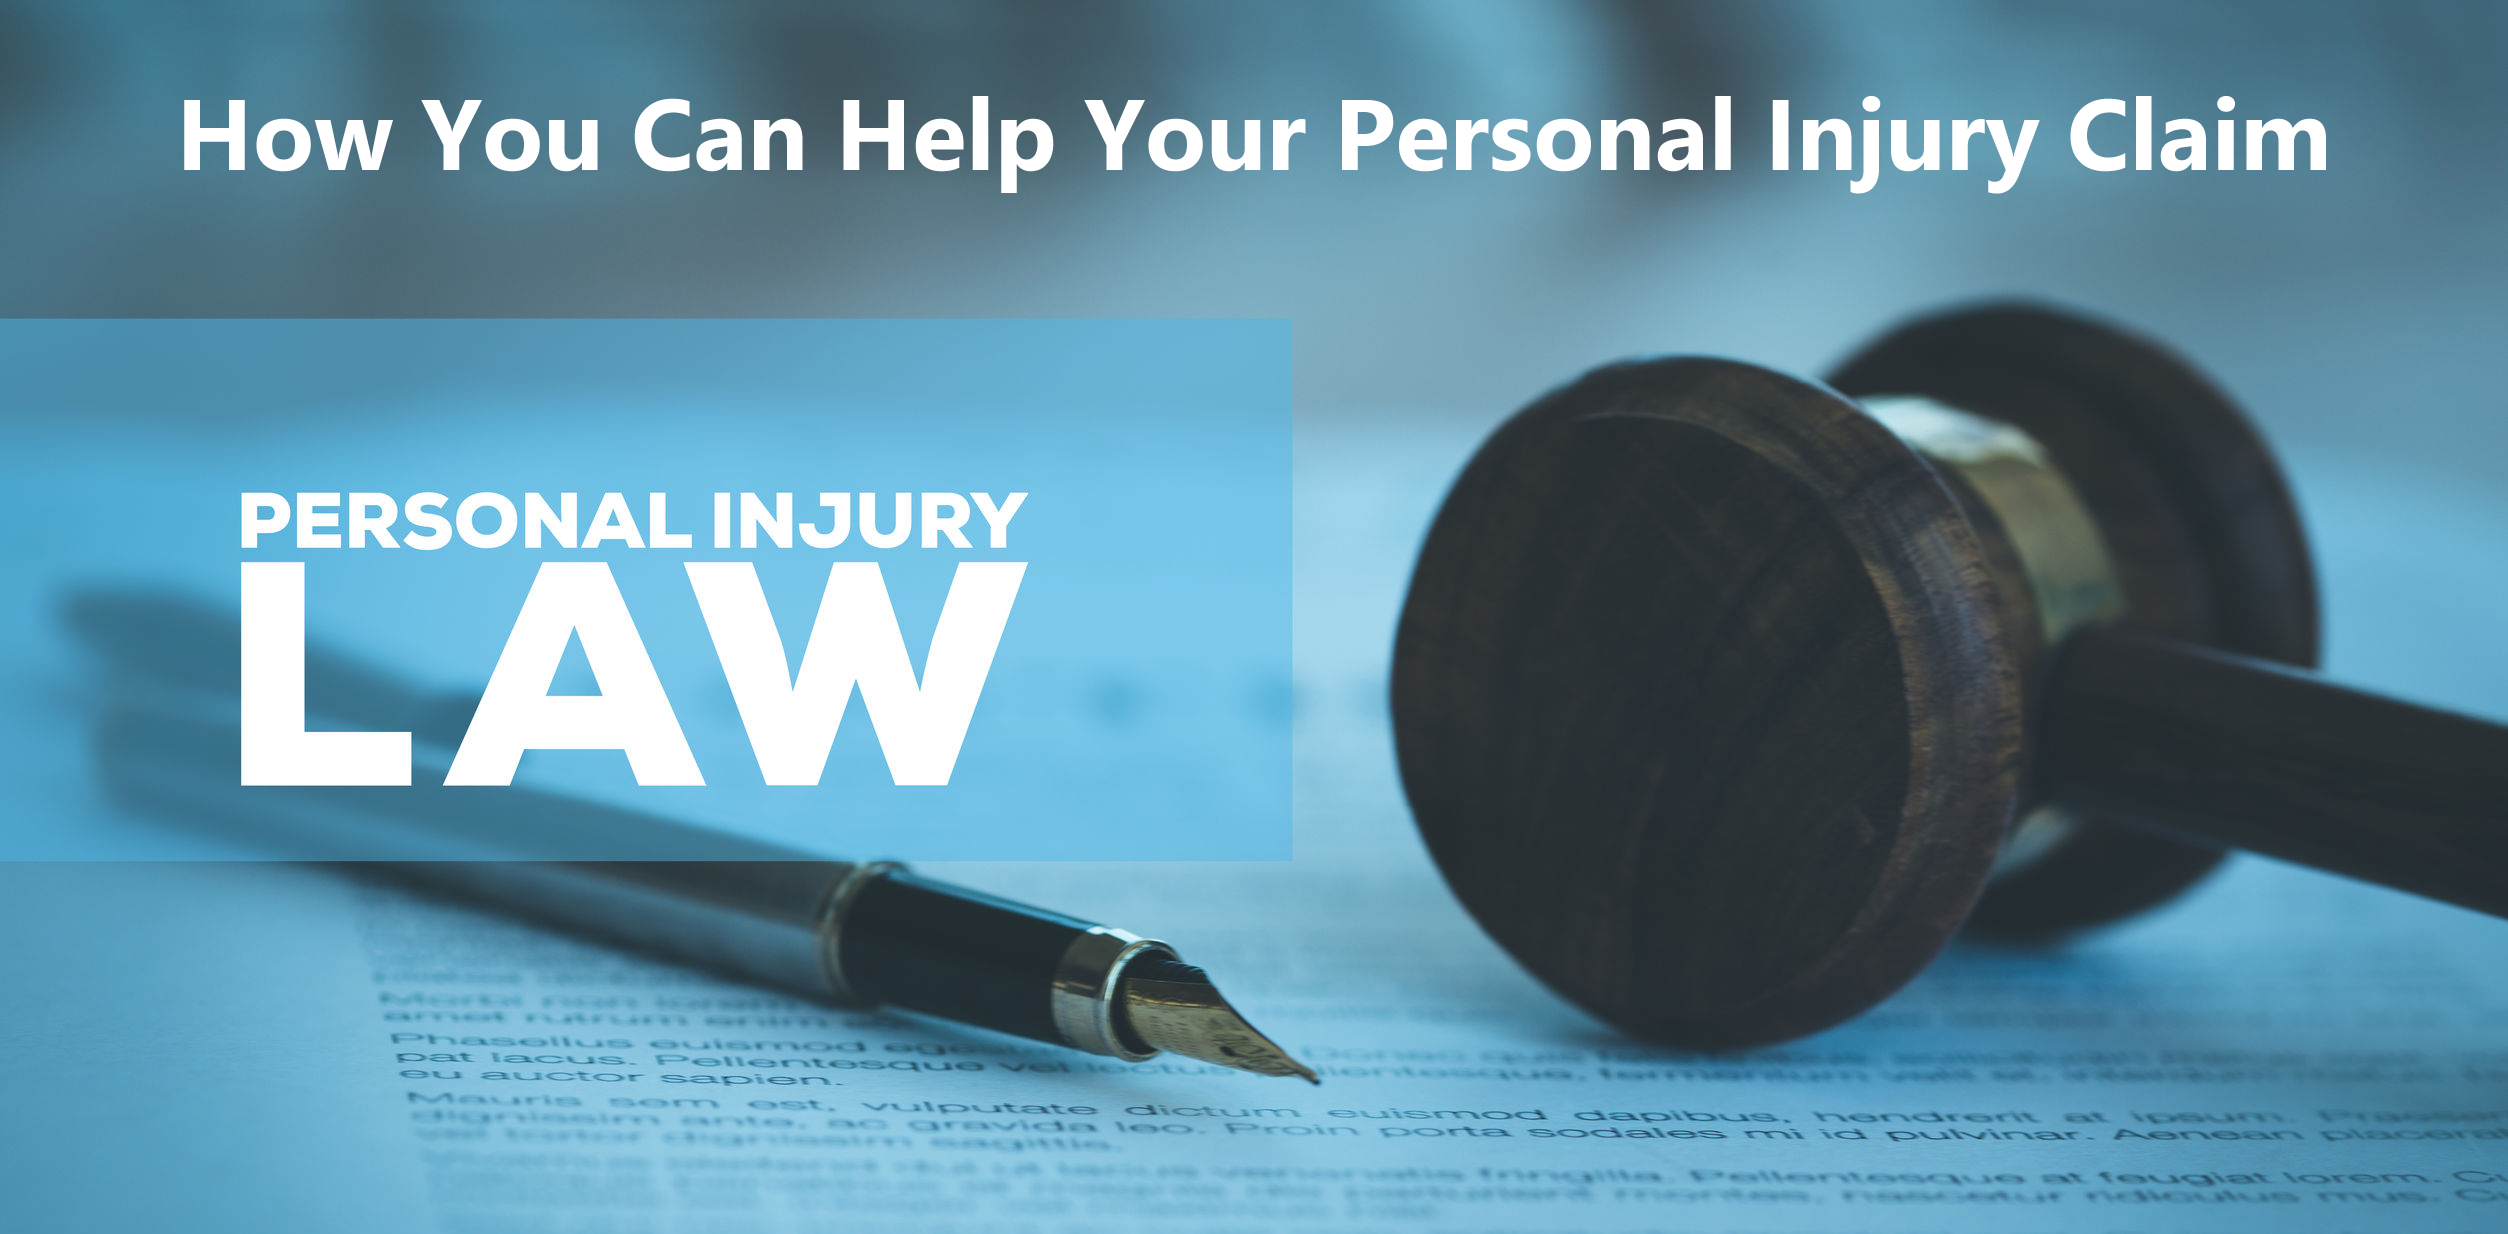 How You Can Help Your Personal Injury Claim